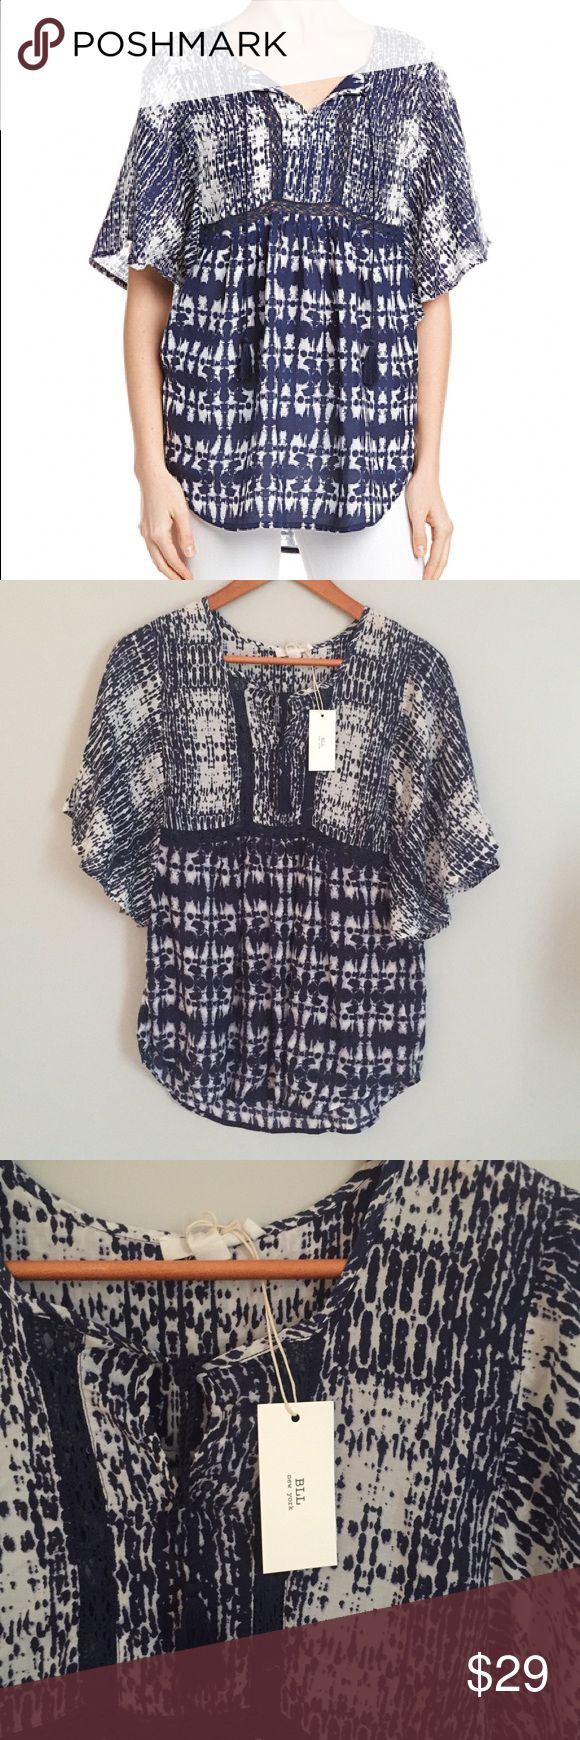 Beach Lunch Lounge tunic New with tags!  Measurements happily given upon request!  No trades. Reasonable offers welcome 🍾Note: 20% off bundles of 2+ items in my closet! Beach Lunch Lounge Tops